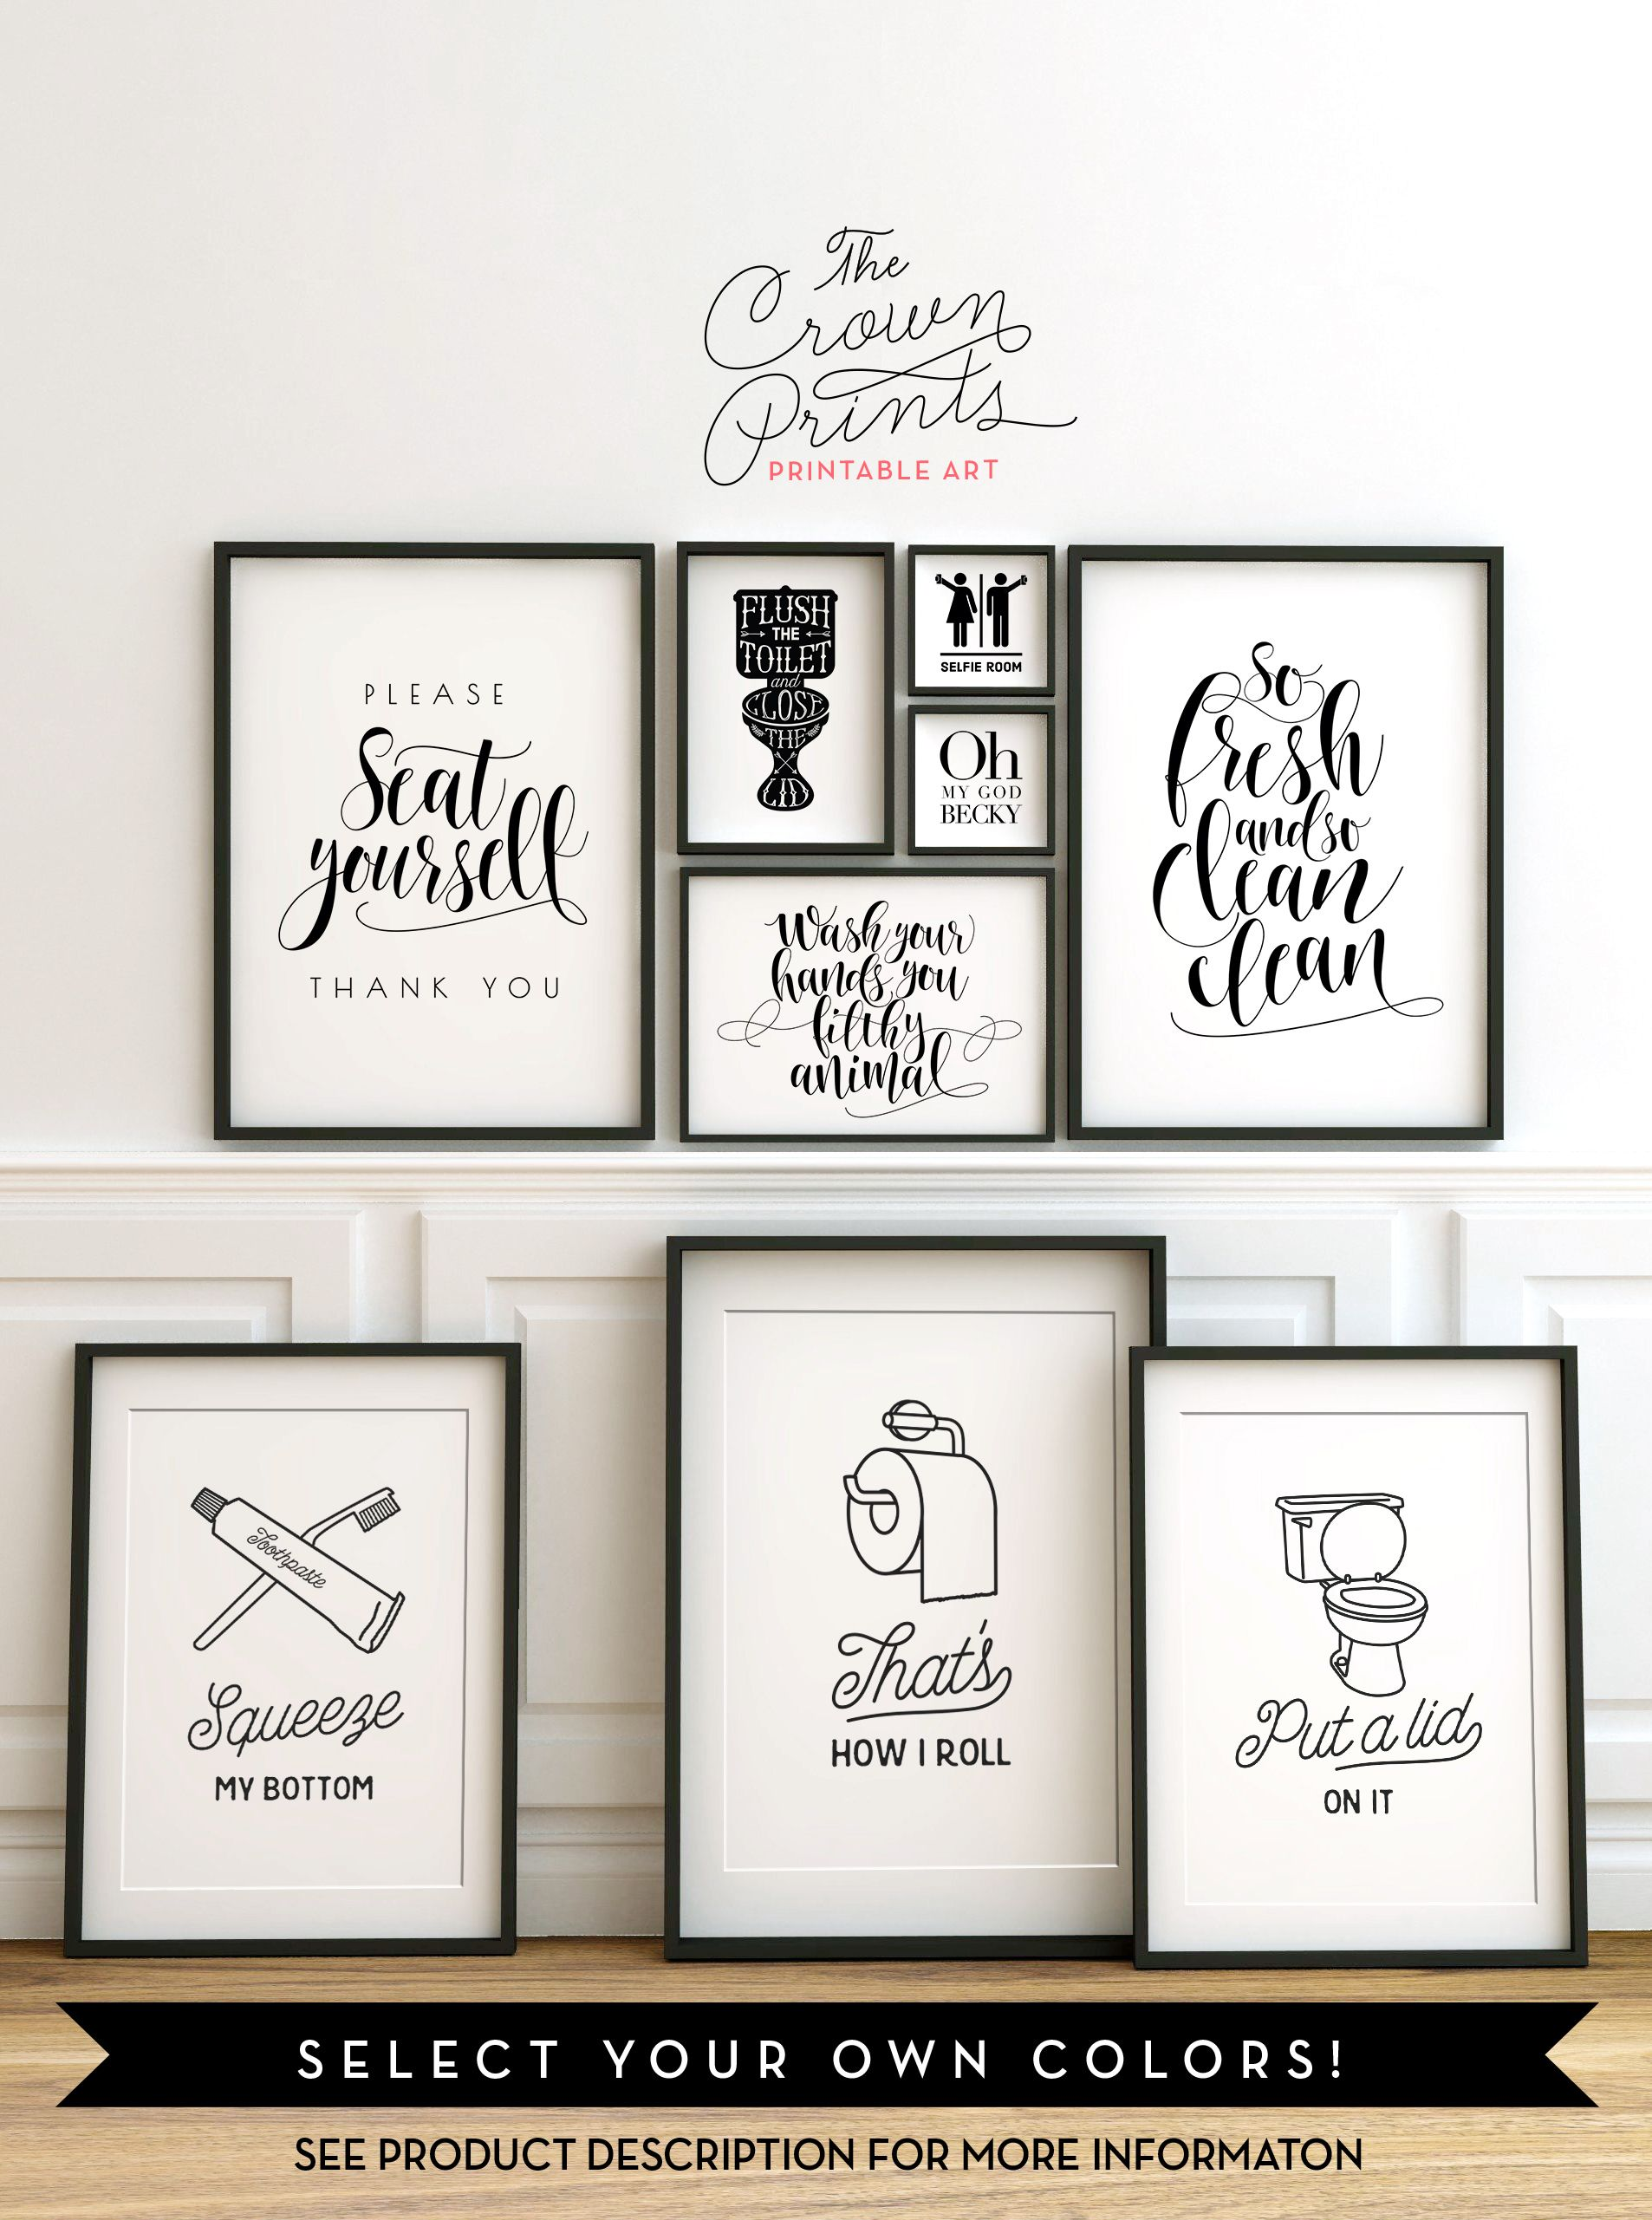 Printable bathroom wall art from the crown prints on etsy for Spa bathroom wall decor